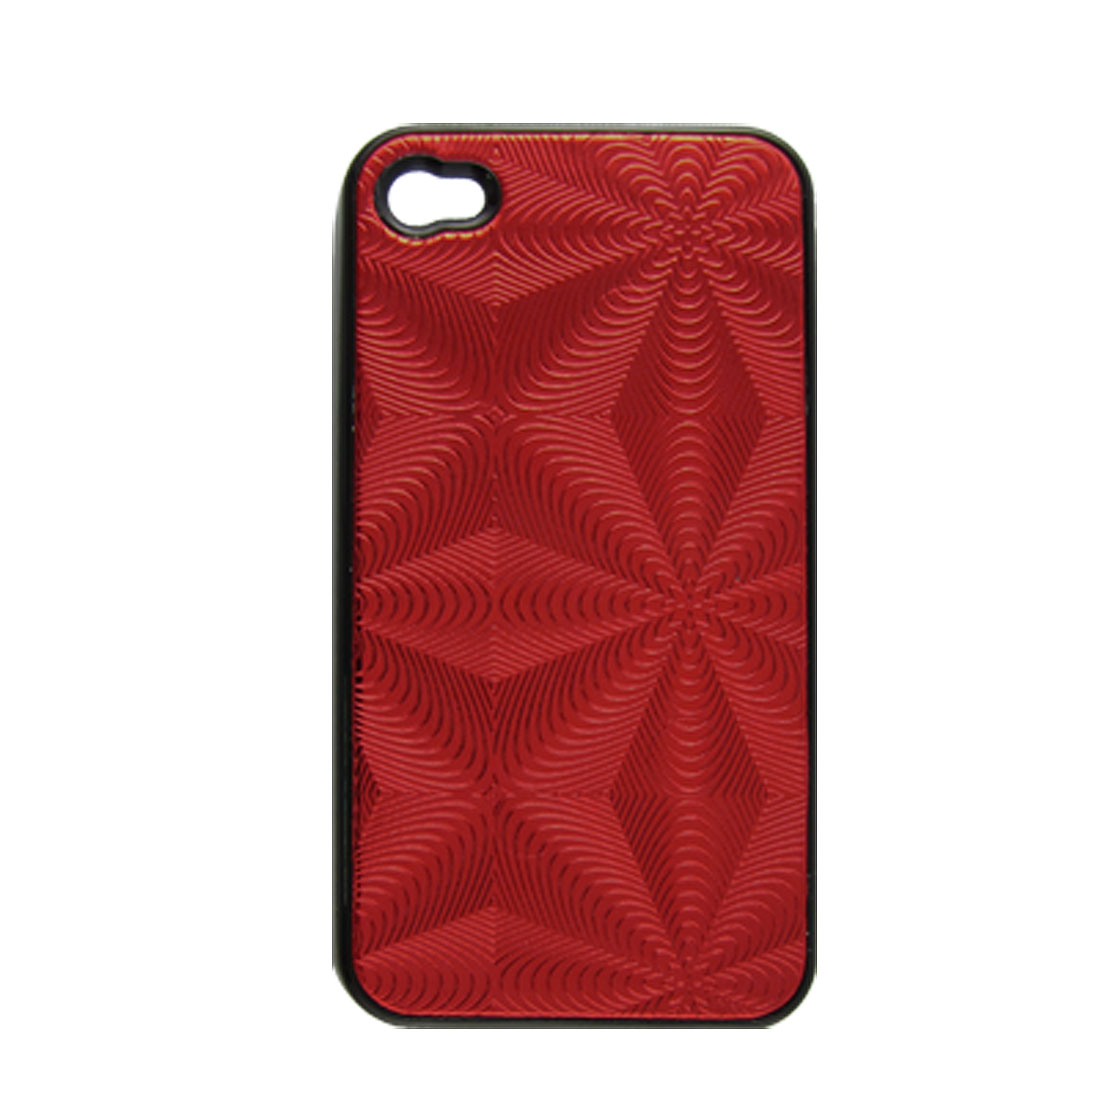 Red Shiny Ripple Faux Leather Coated Hard Plastic Cover for iPhone 4 4G